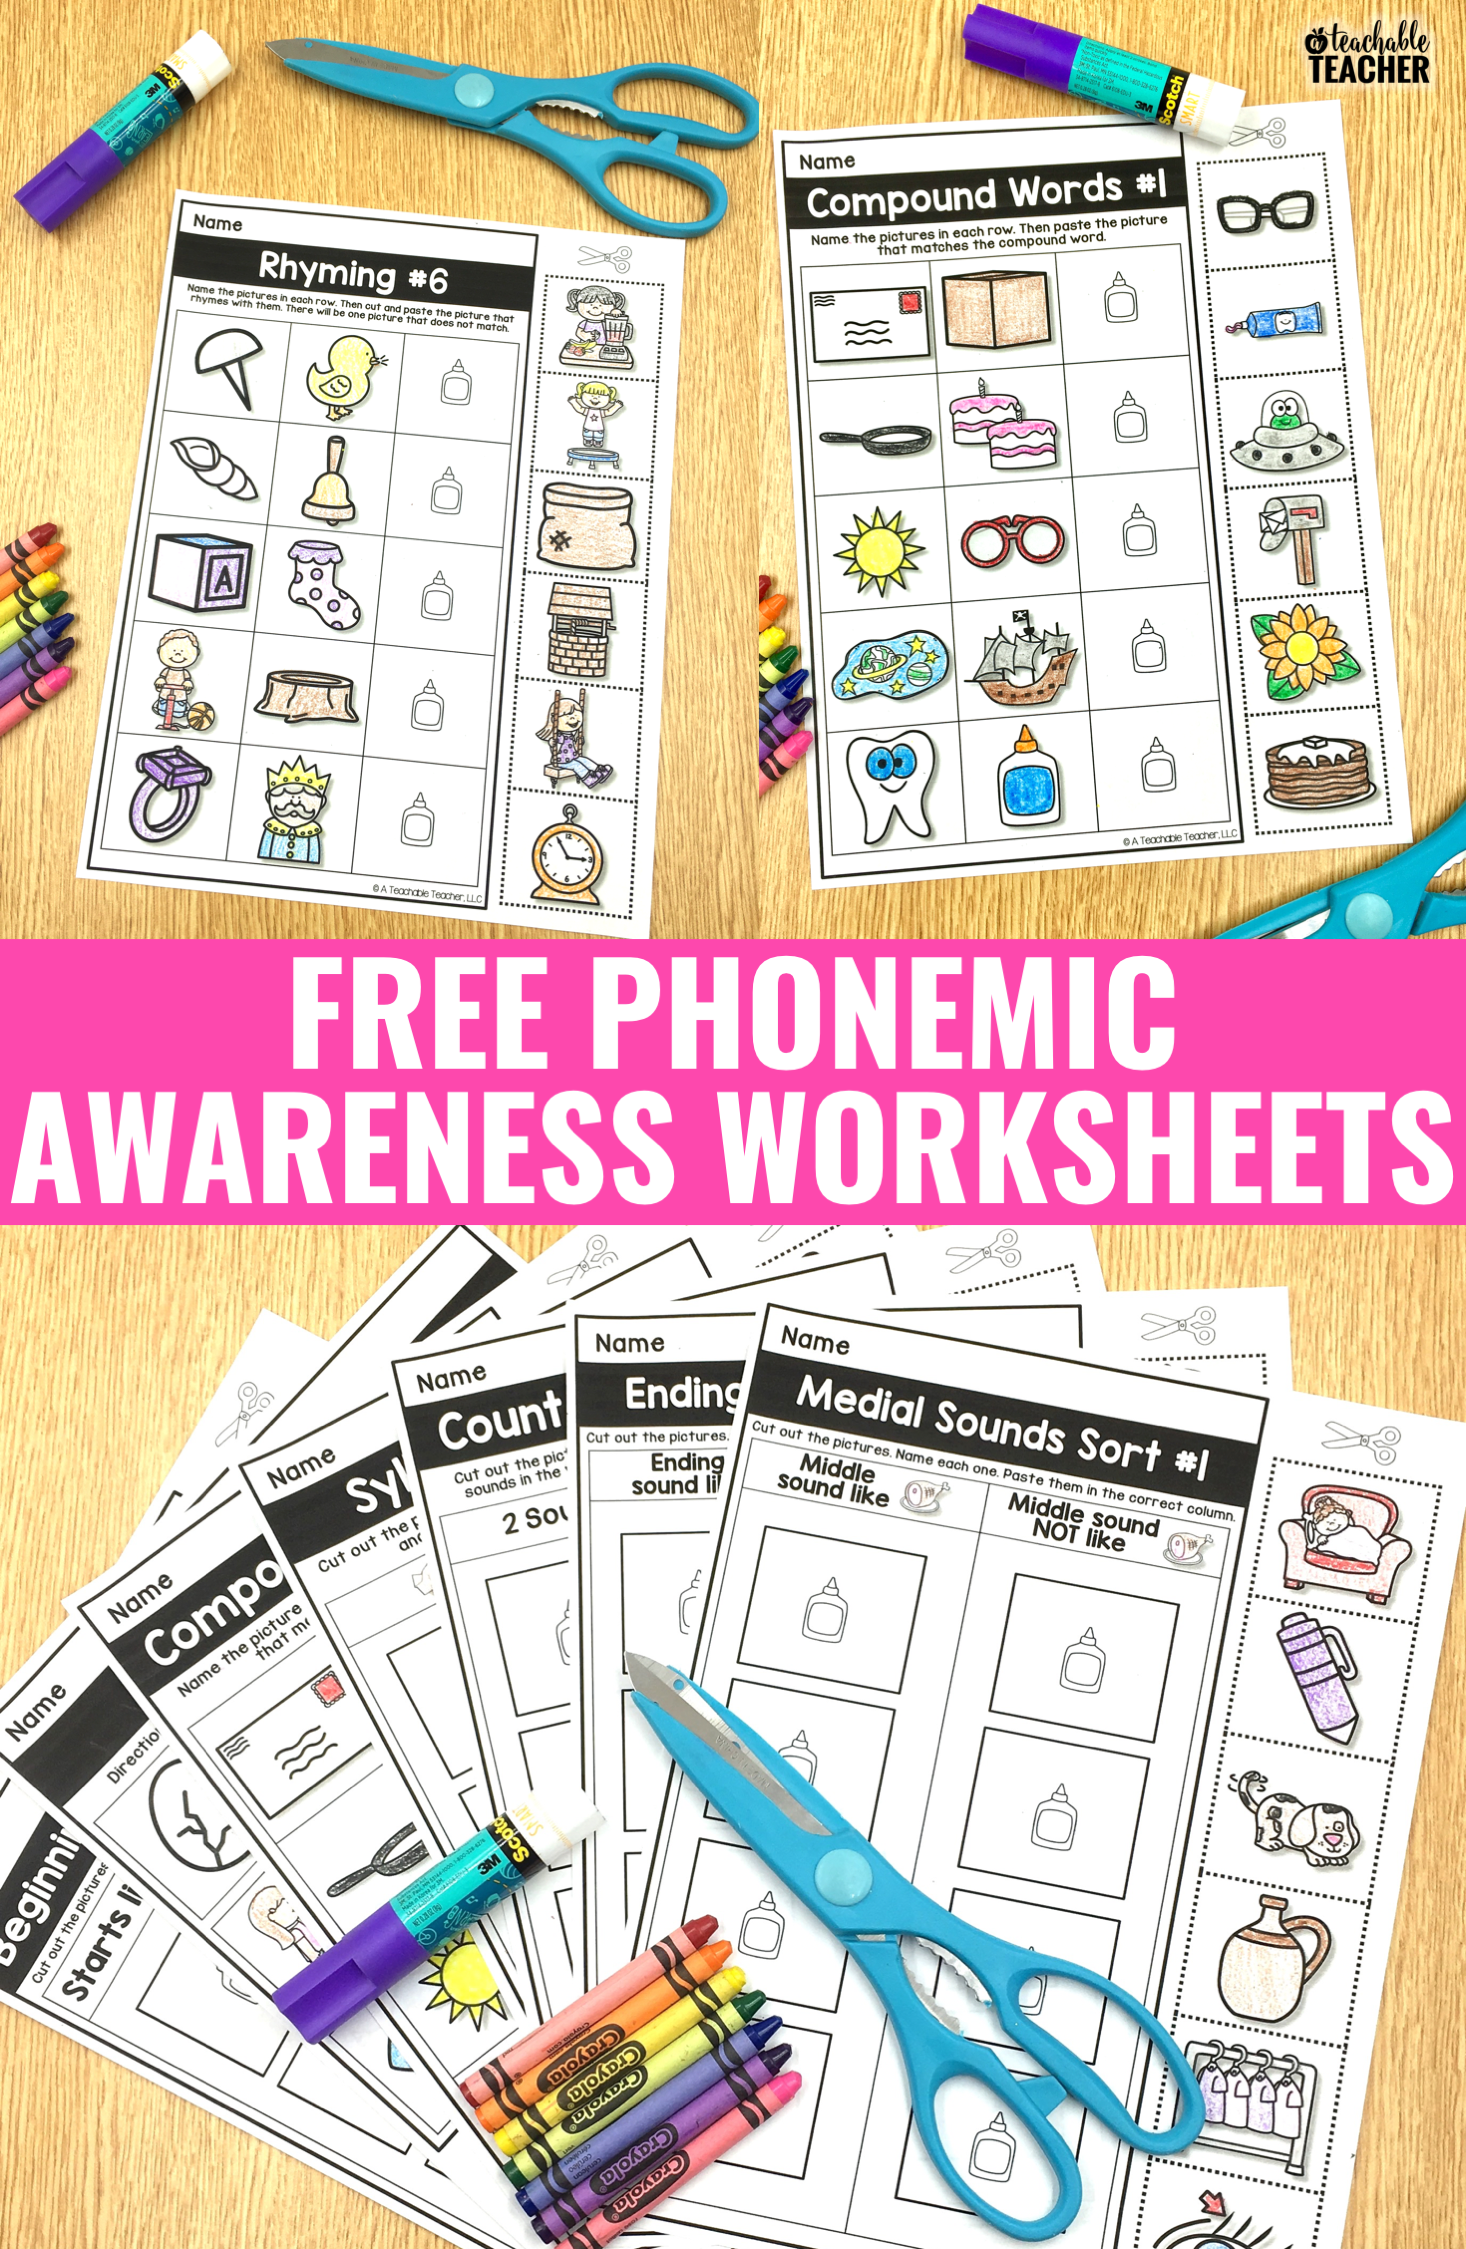 FREE Phonemic Awareness Worksheets | Phonemic awareness ...